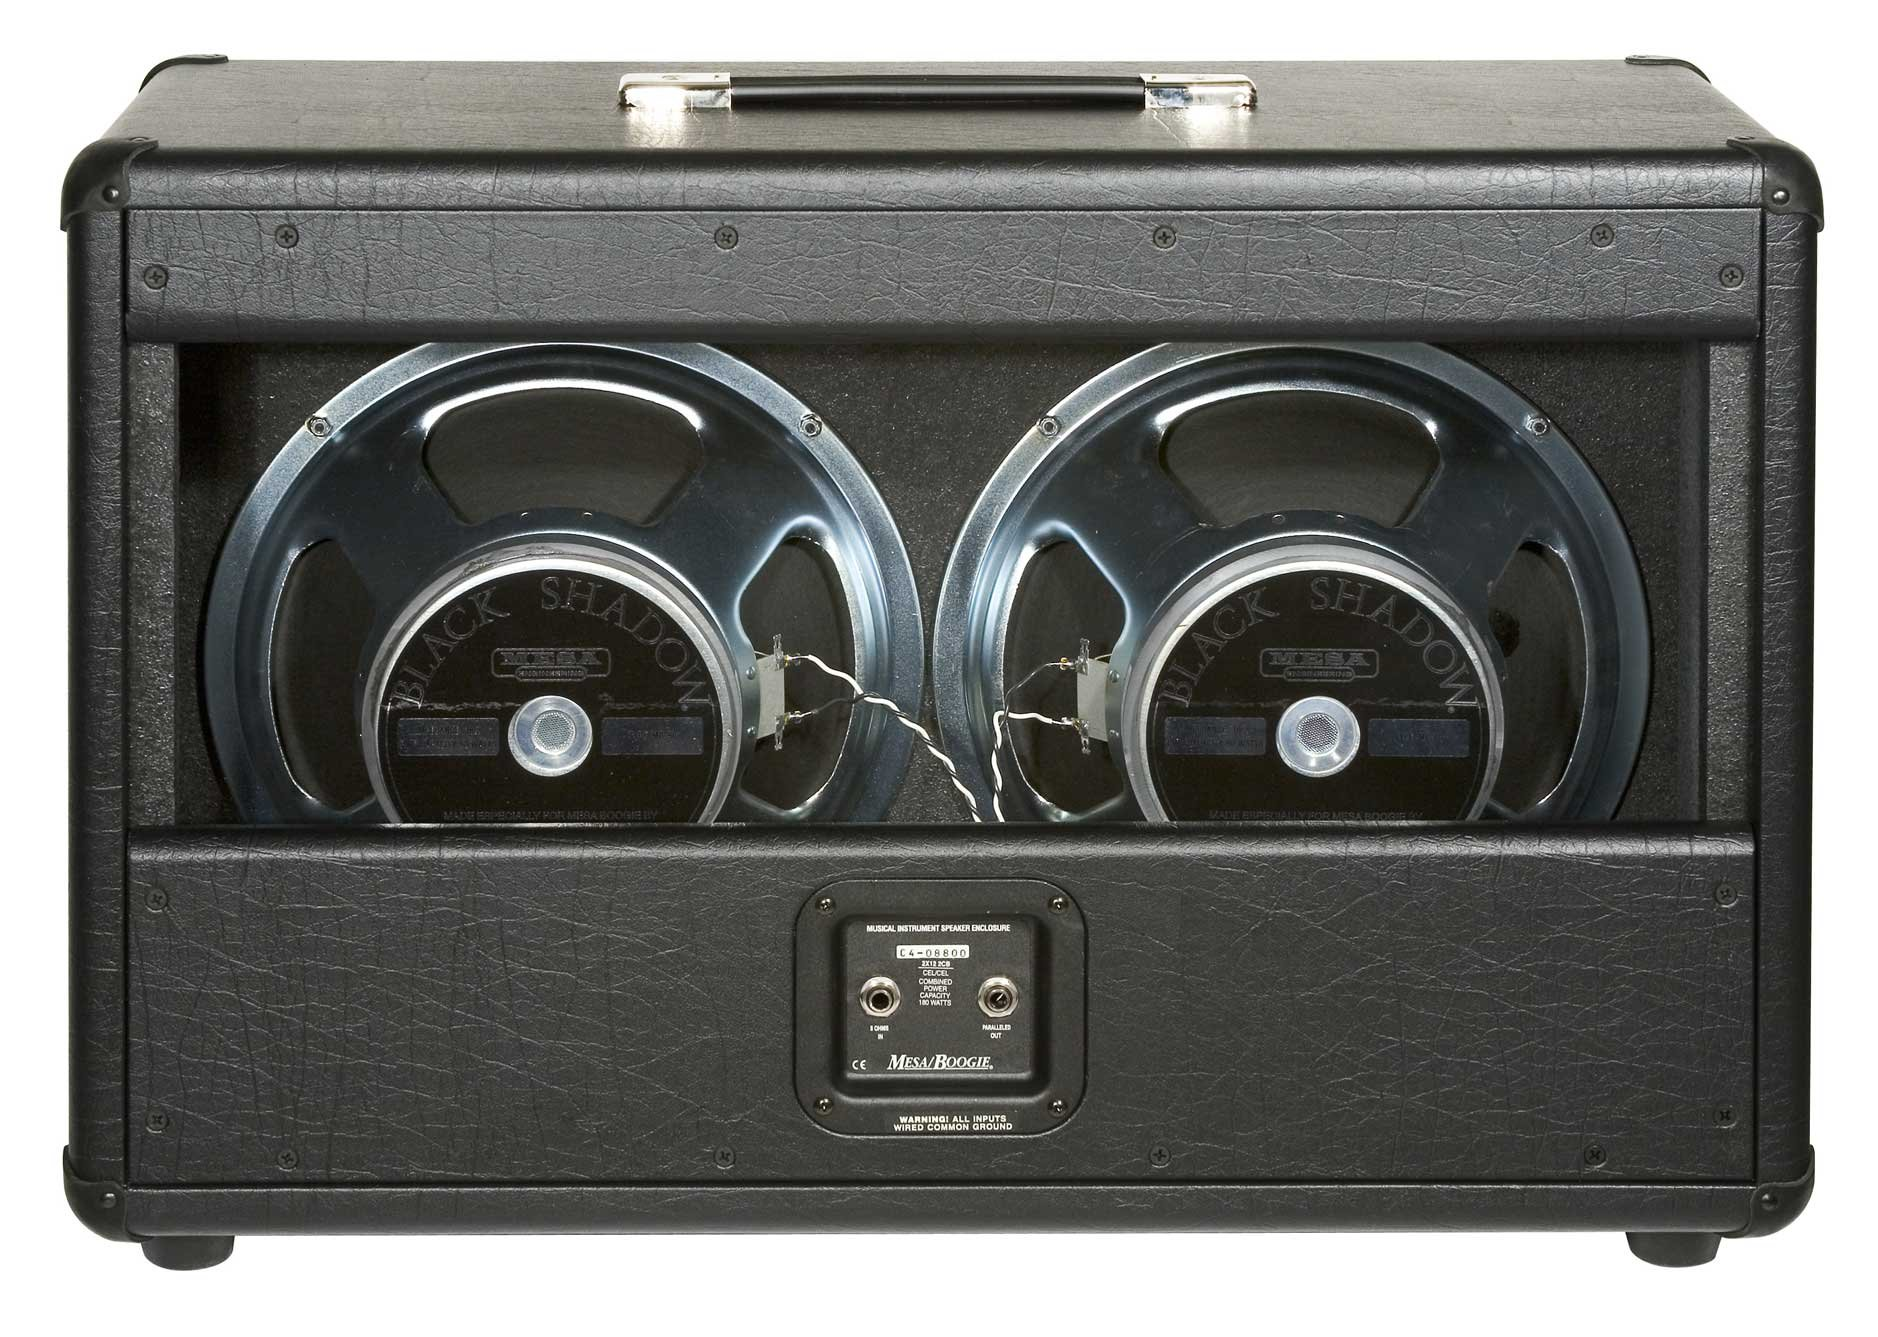 Mesa 2x12 Cab Wiring Not Lossing Diagram Boogie Lone Star Cabinet 180w Guitar Speaker By Rh Fullcompass Com Plans Inside